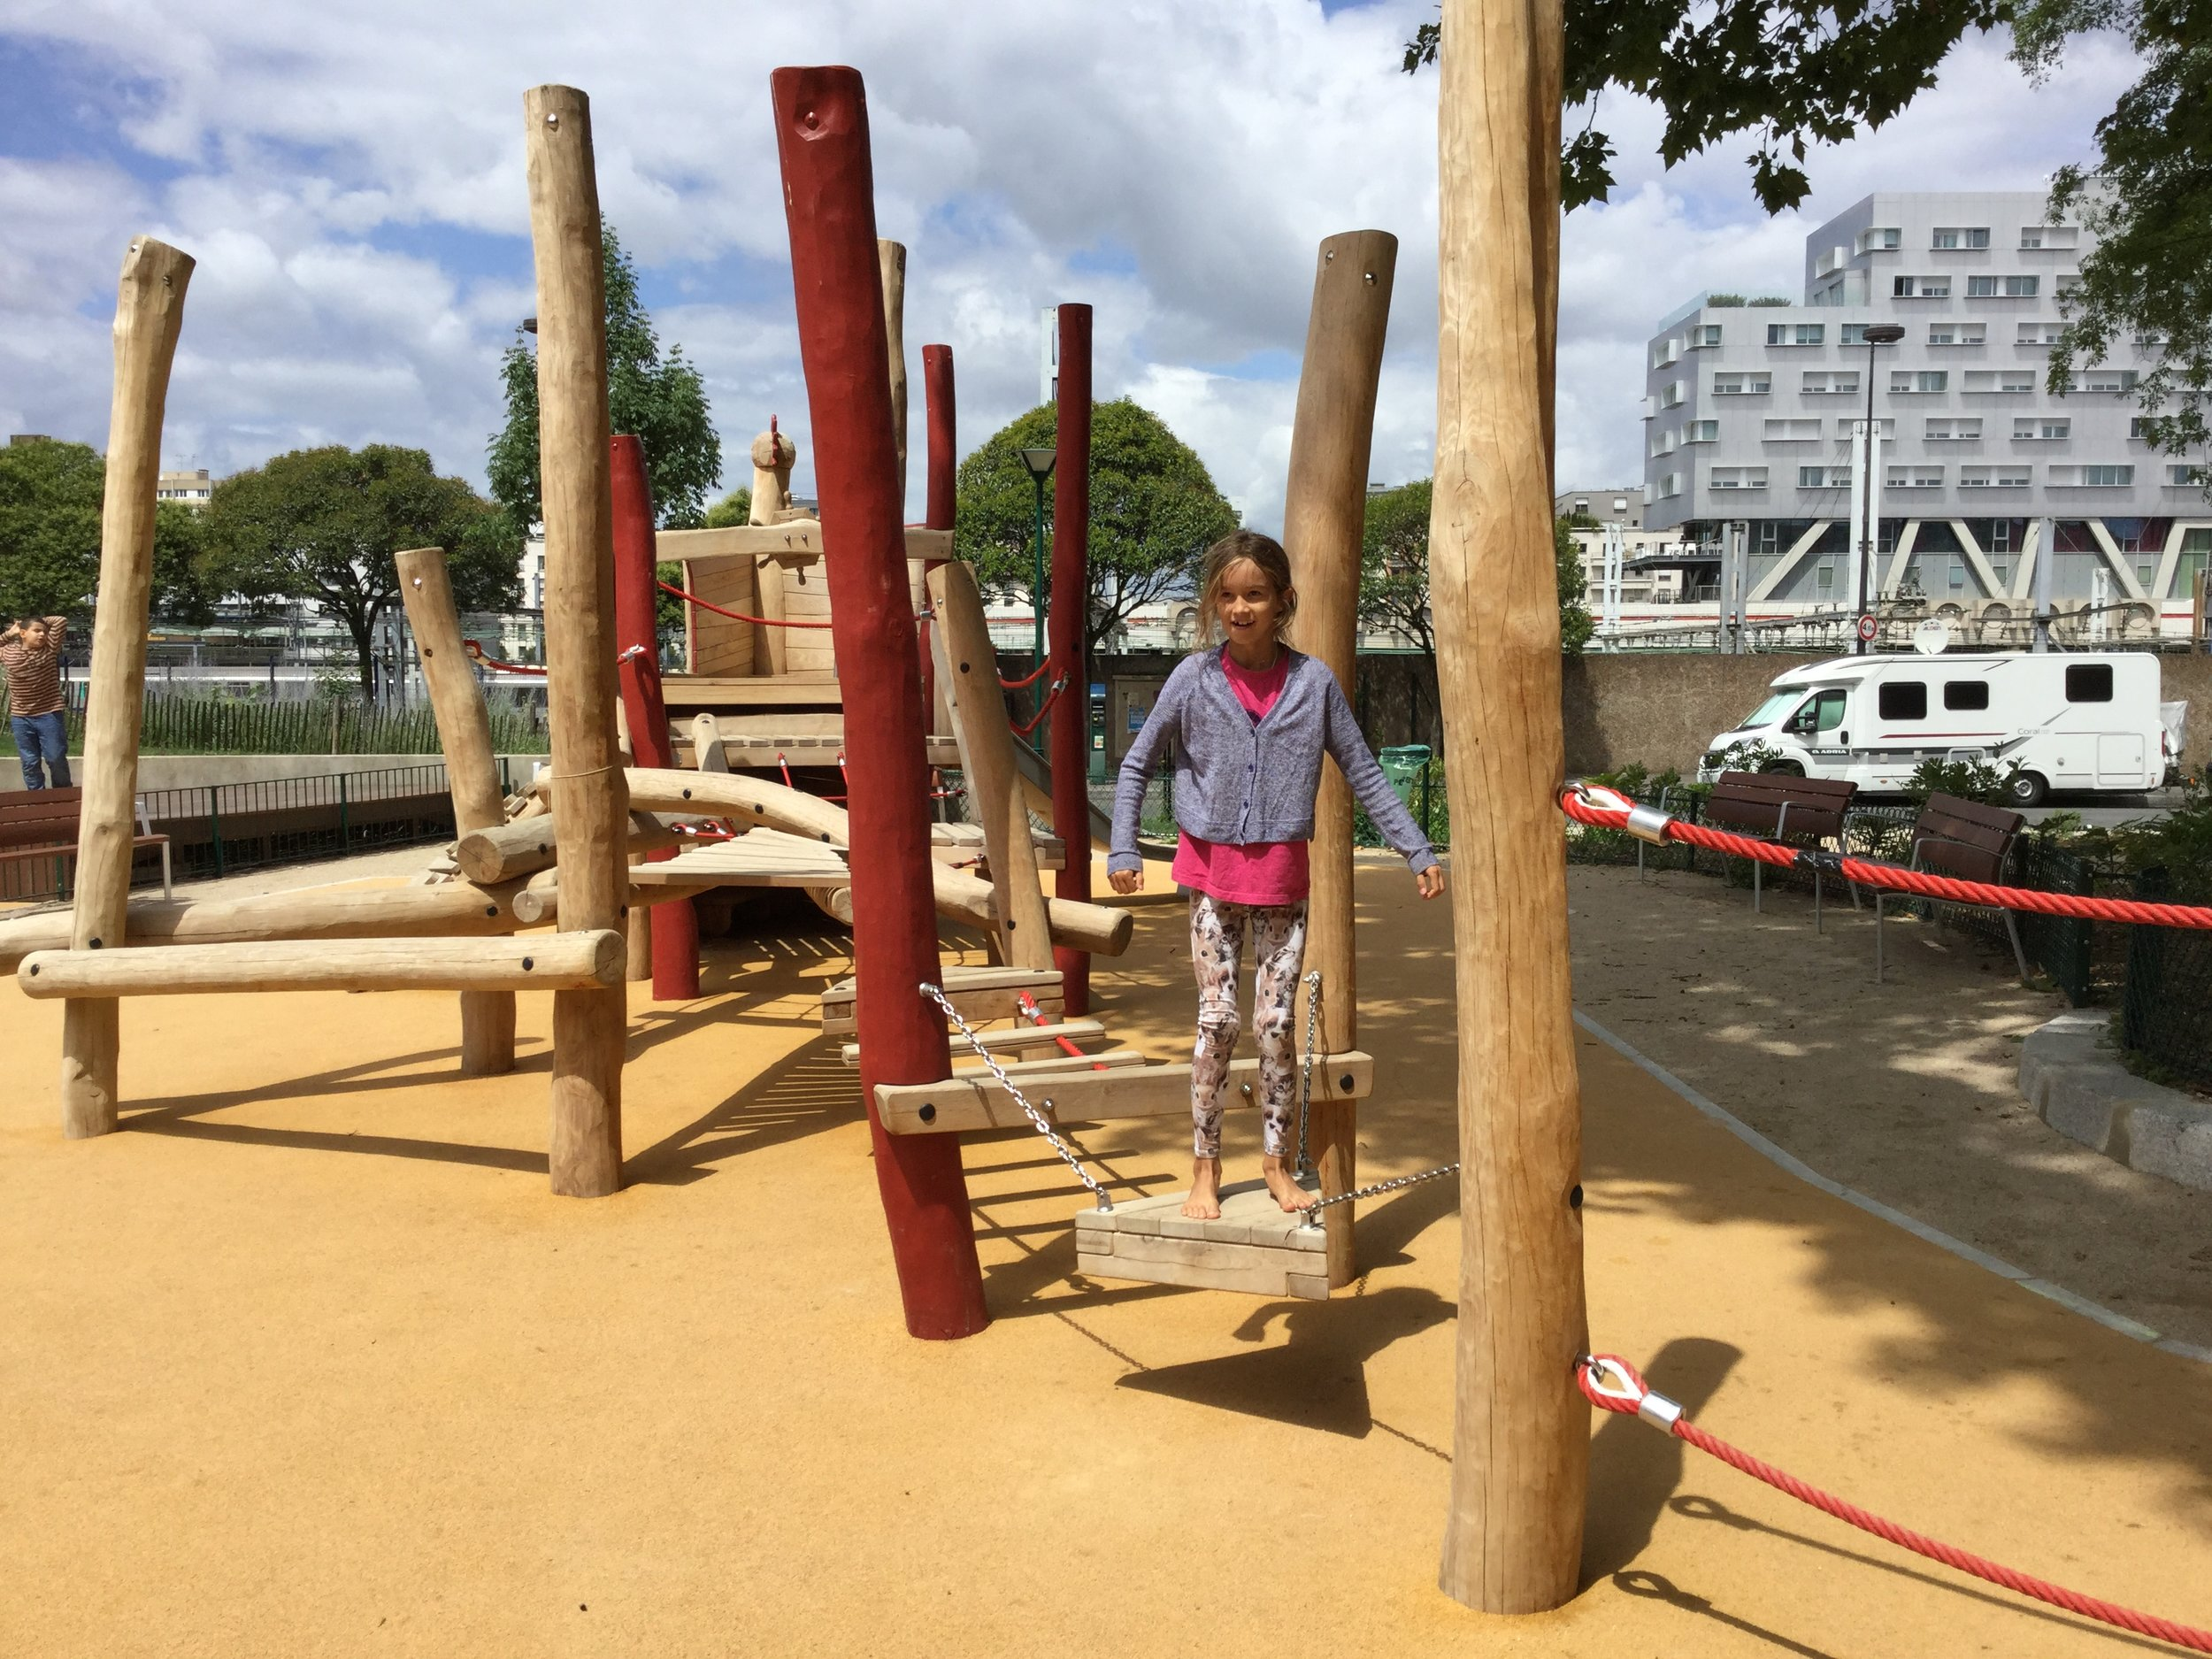 We even found a couple of playgrounds for Lili. This one had a cool 'wobbly platform' to balance on.